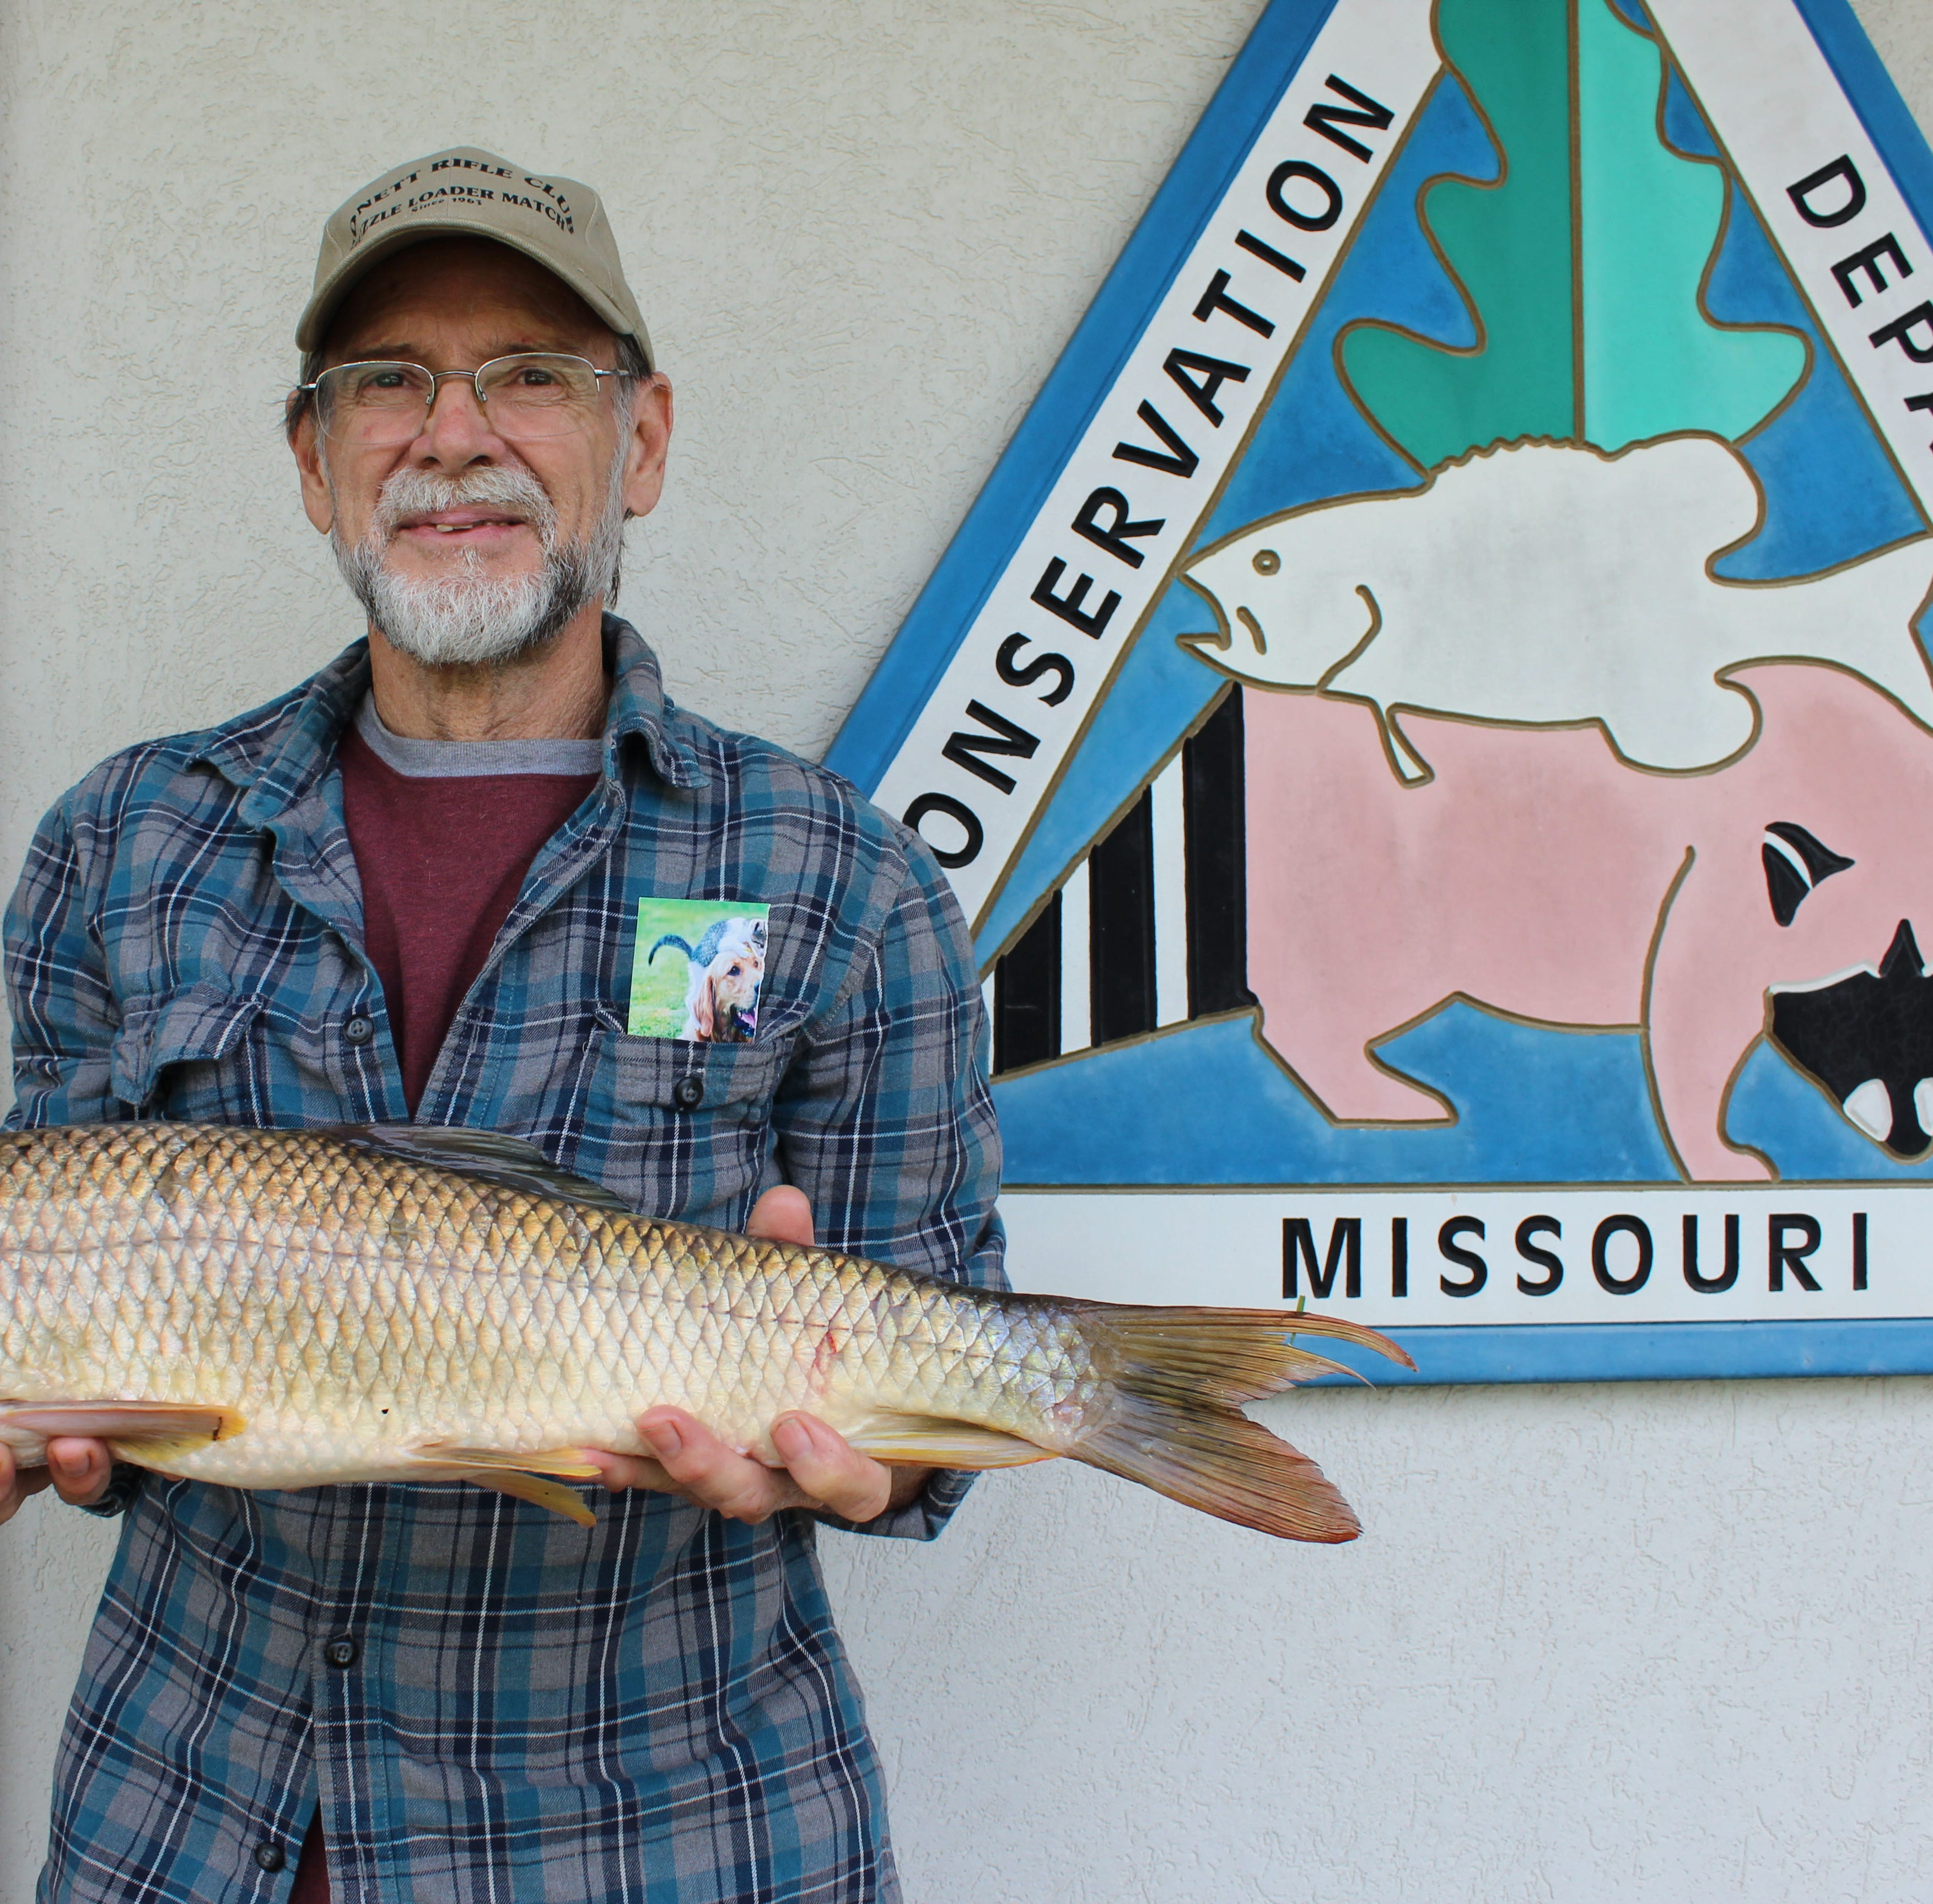 Nixa angler's 'world record' redhorse turns out to be different kind of fish